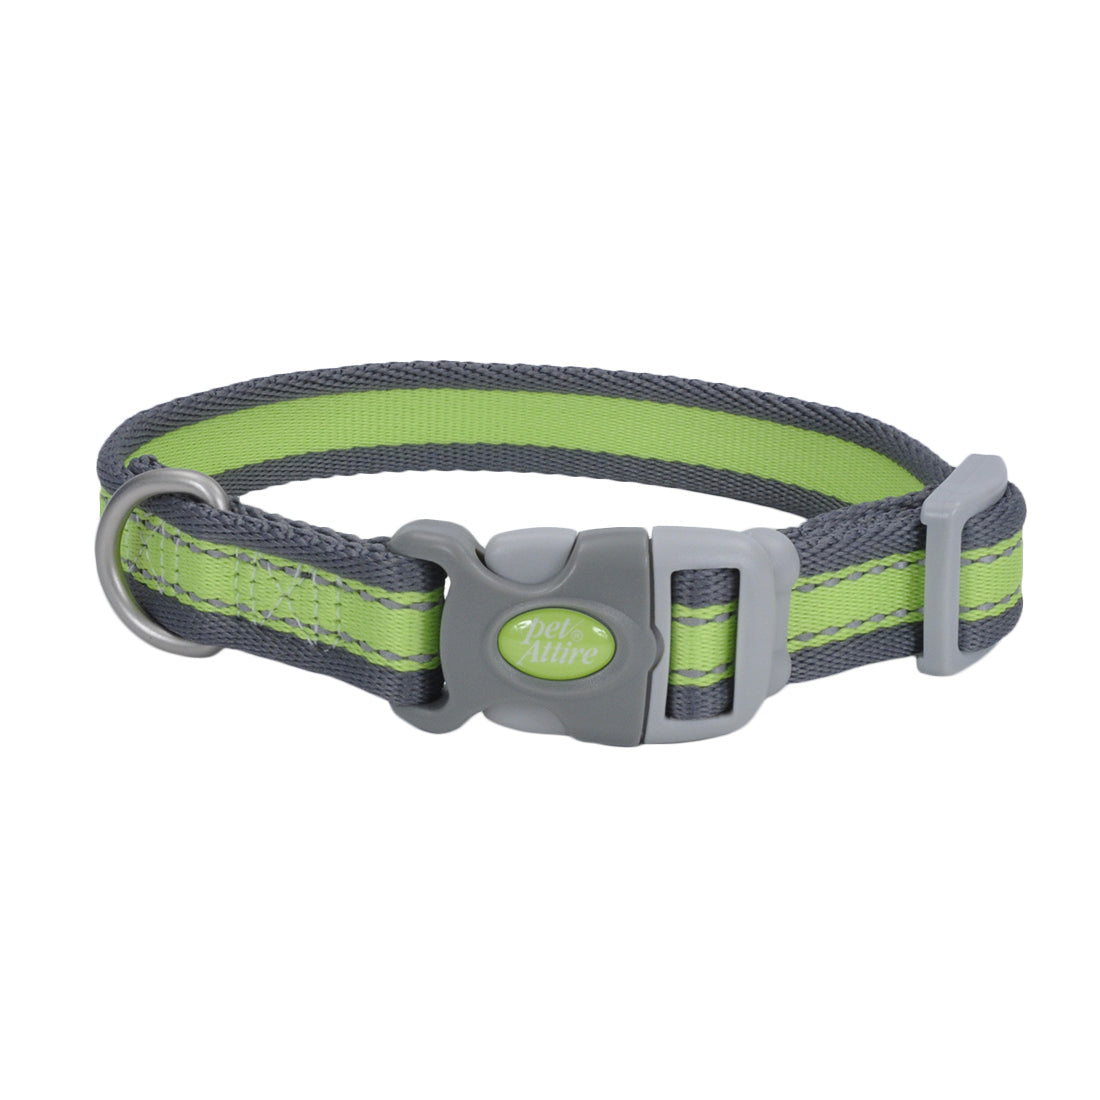 "Coastal Pet Attire Pro Adjustable Reflective Collar 18-26"" Green with Gray"